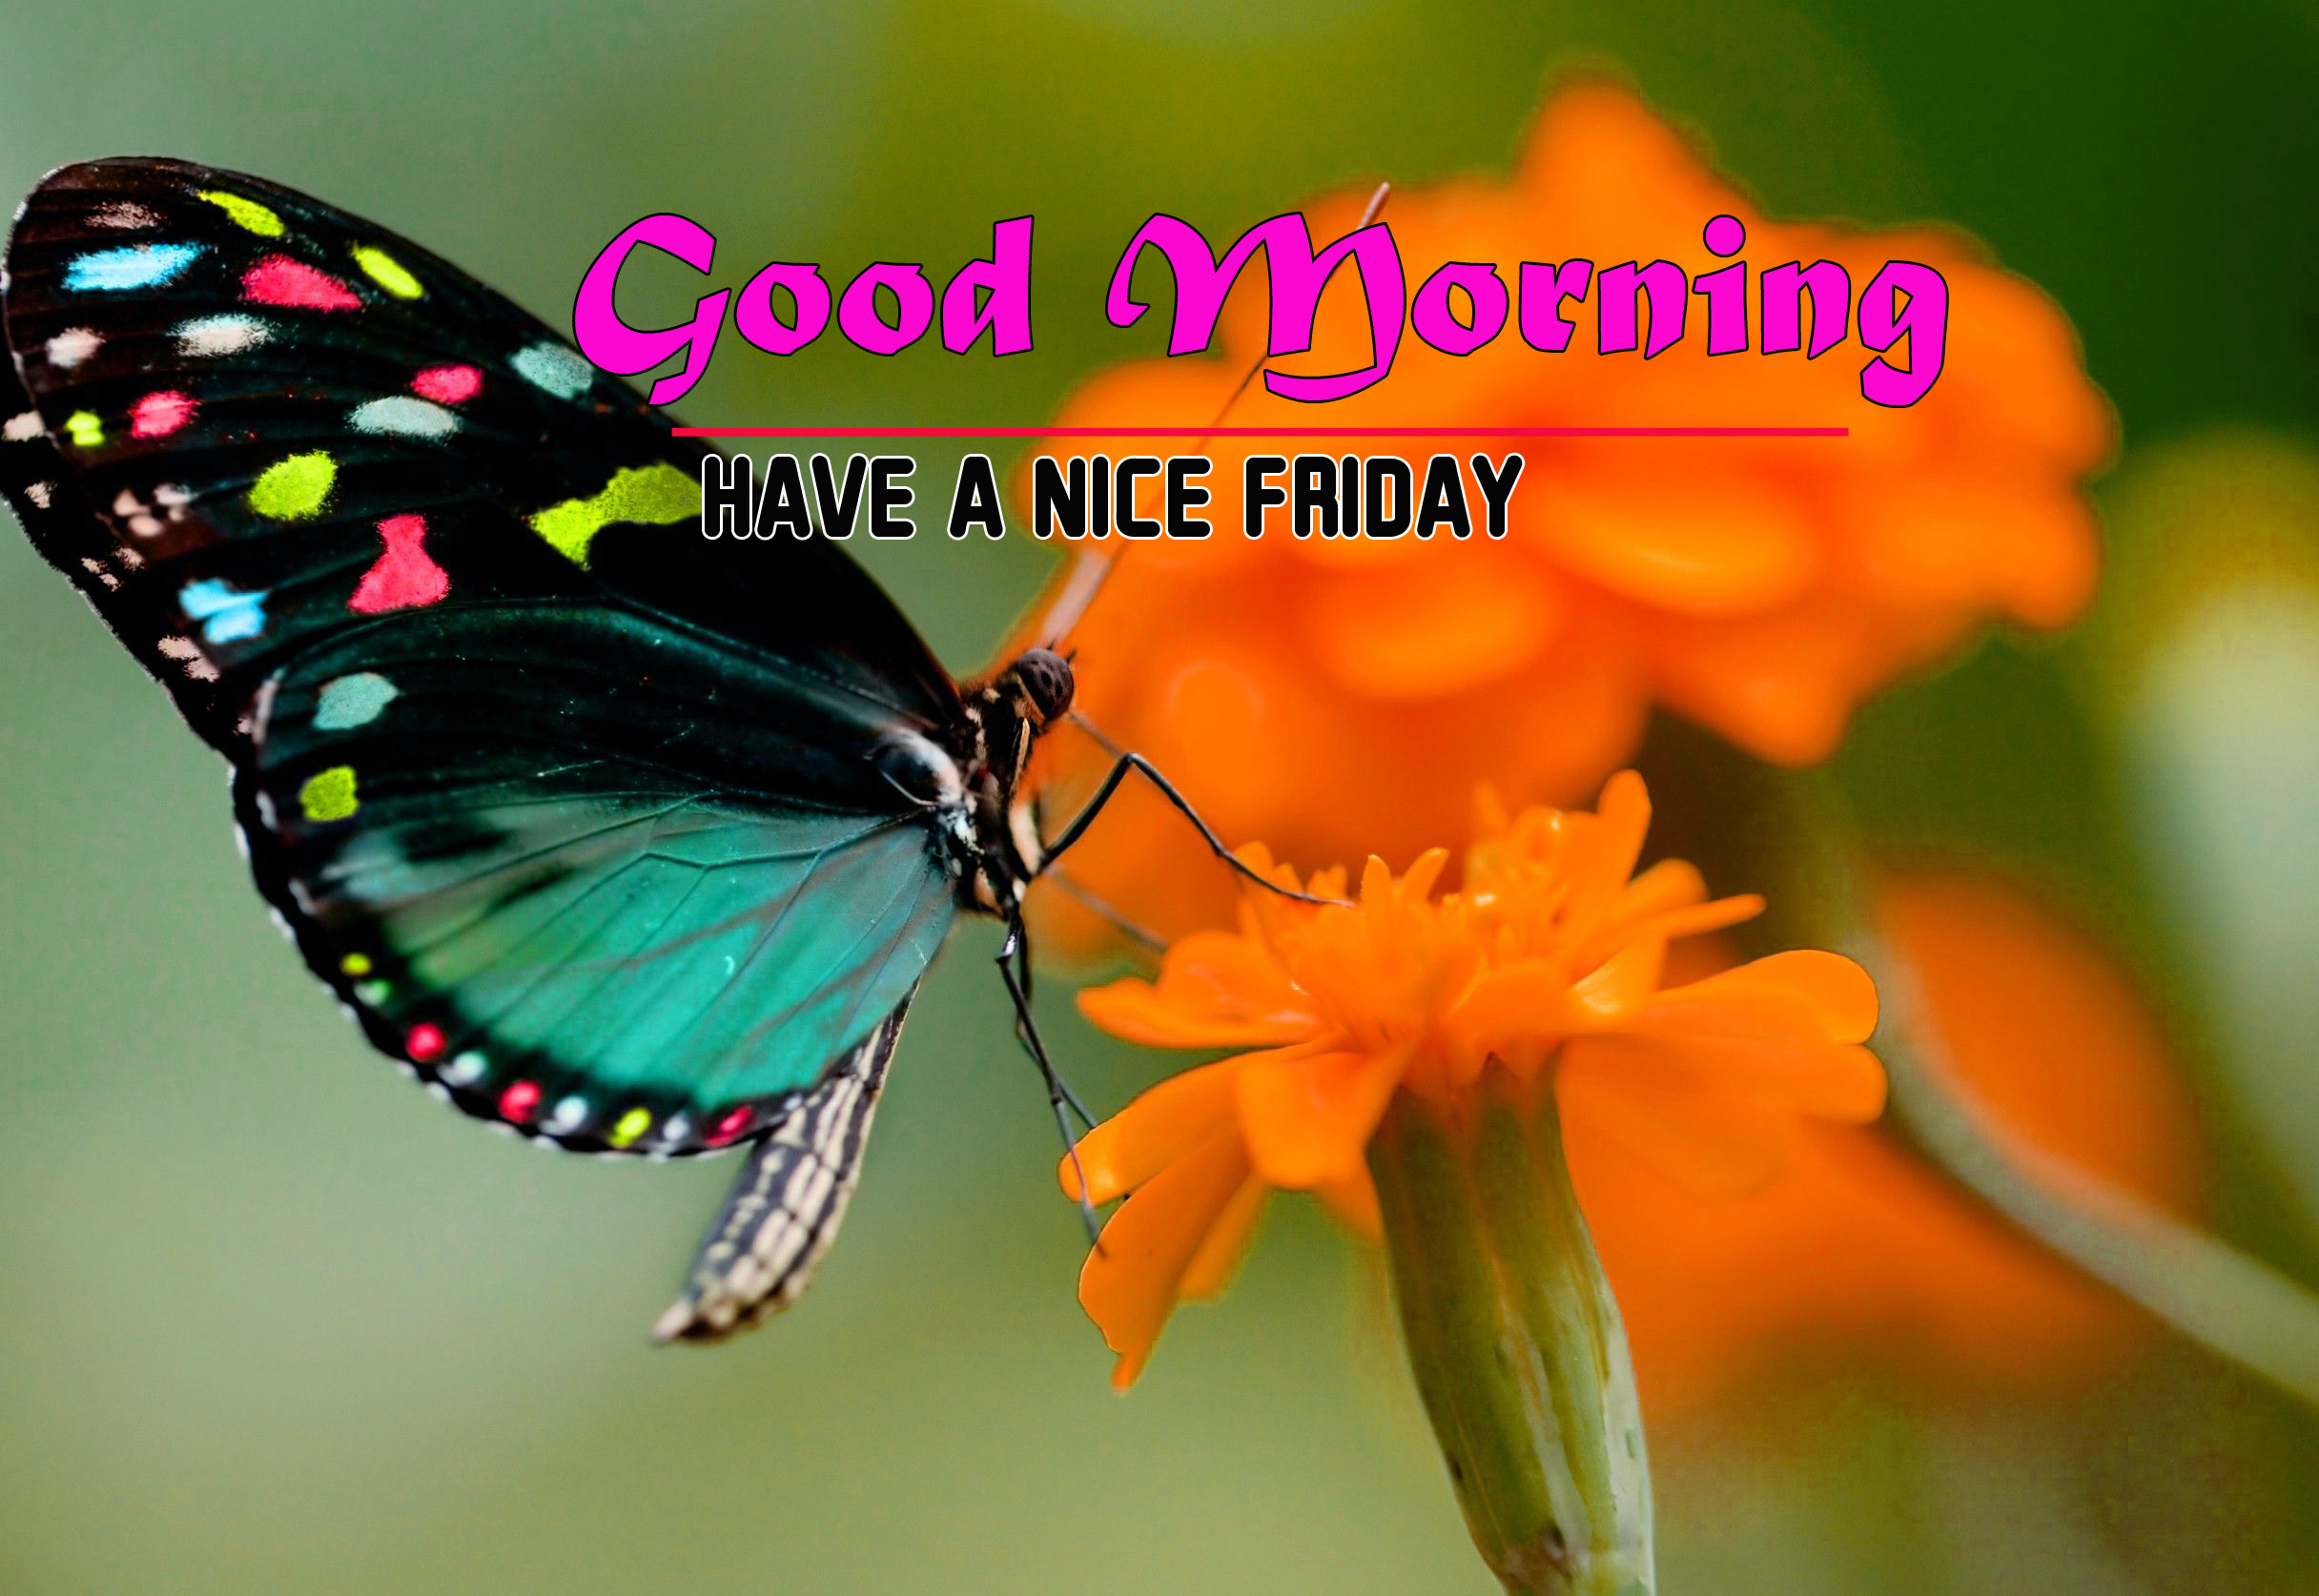 Friday Good Morning Images 2